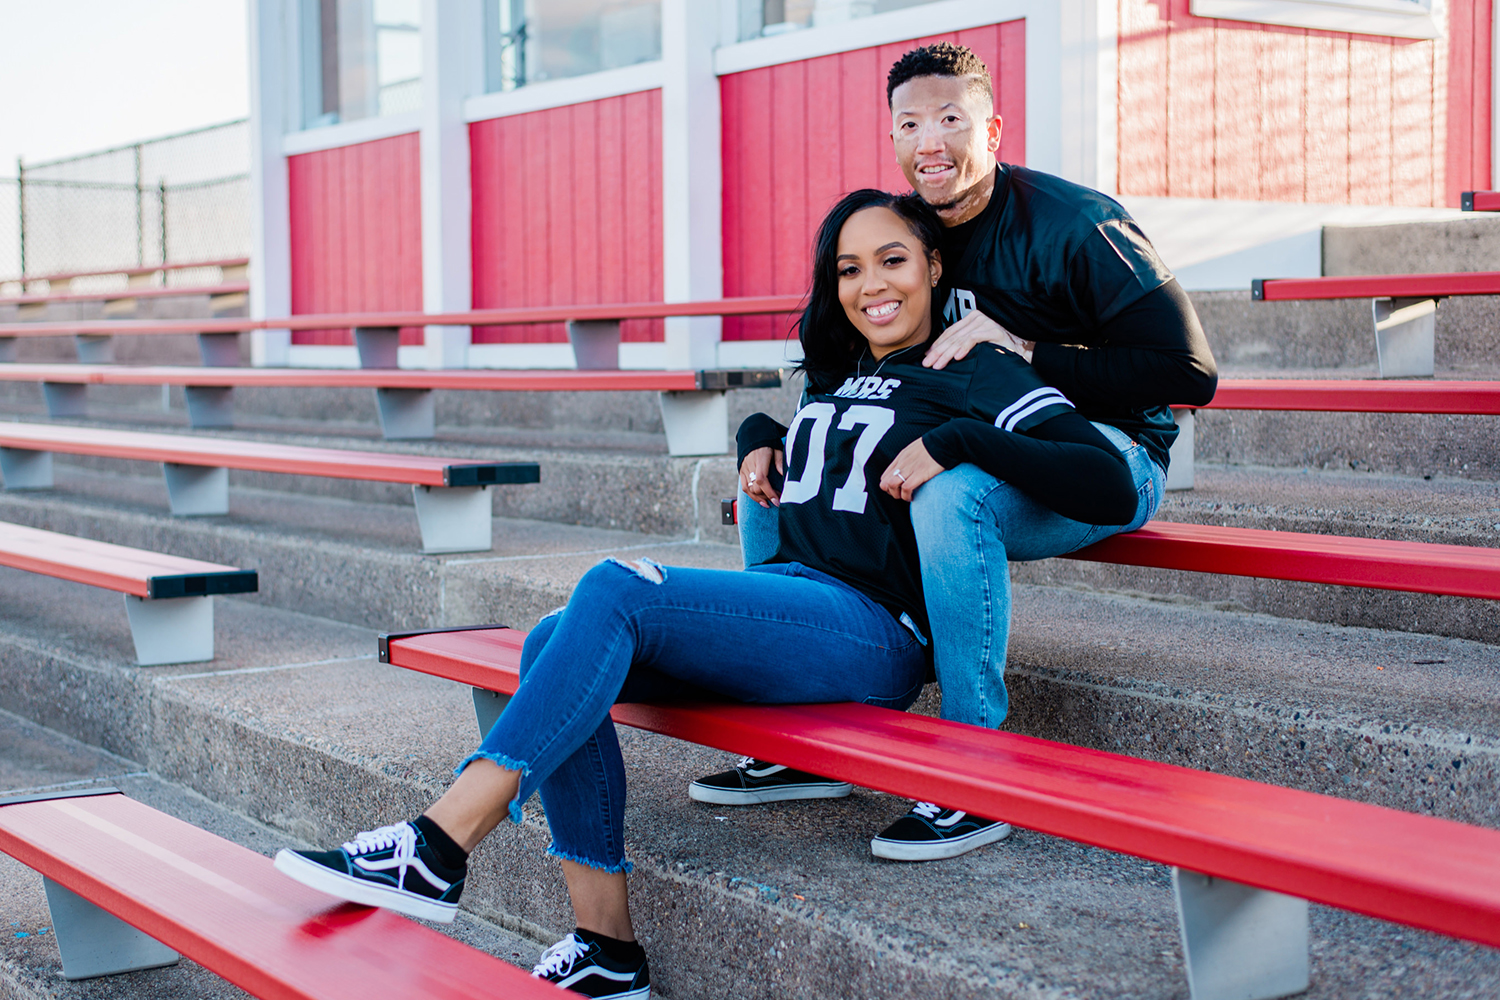 Black couple seated in bleachers with 07 and 26 on front of jerseys. By Tonjanika Smith Photography